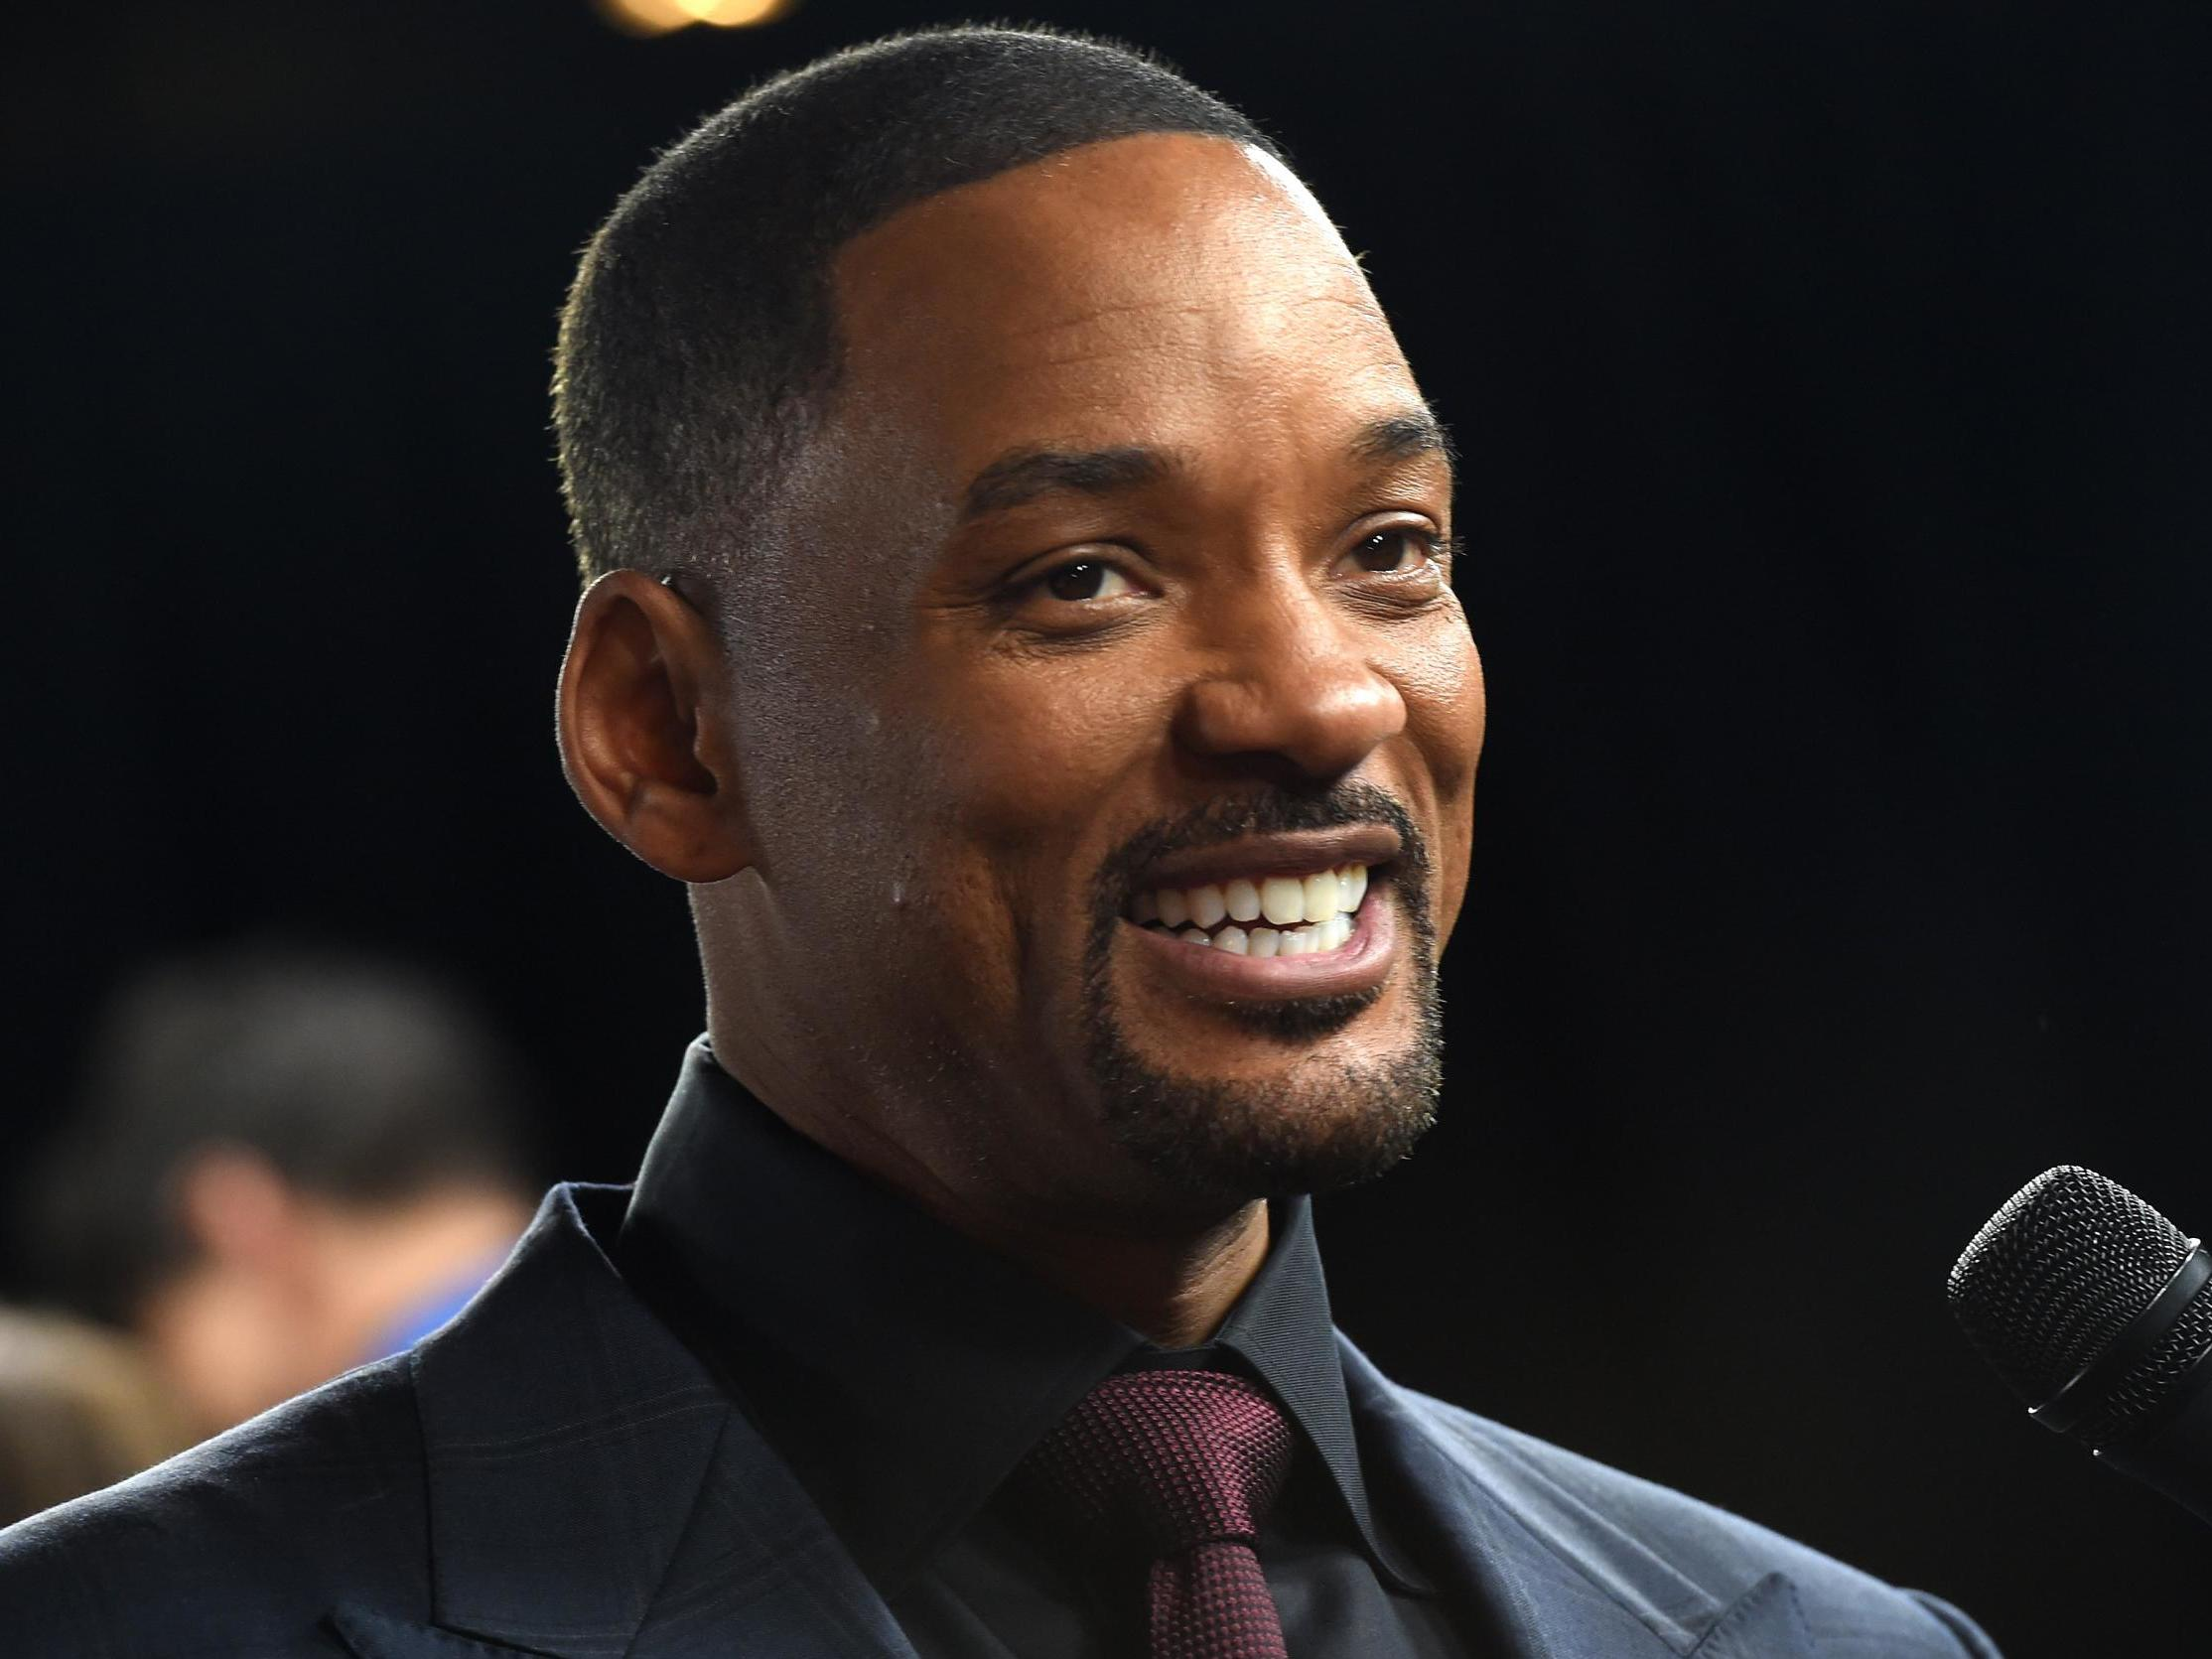 Will Smith responds to Aladdin co-star claiming he's been shunned by Hollywood